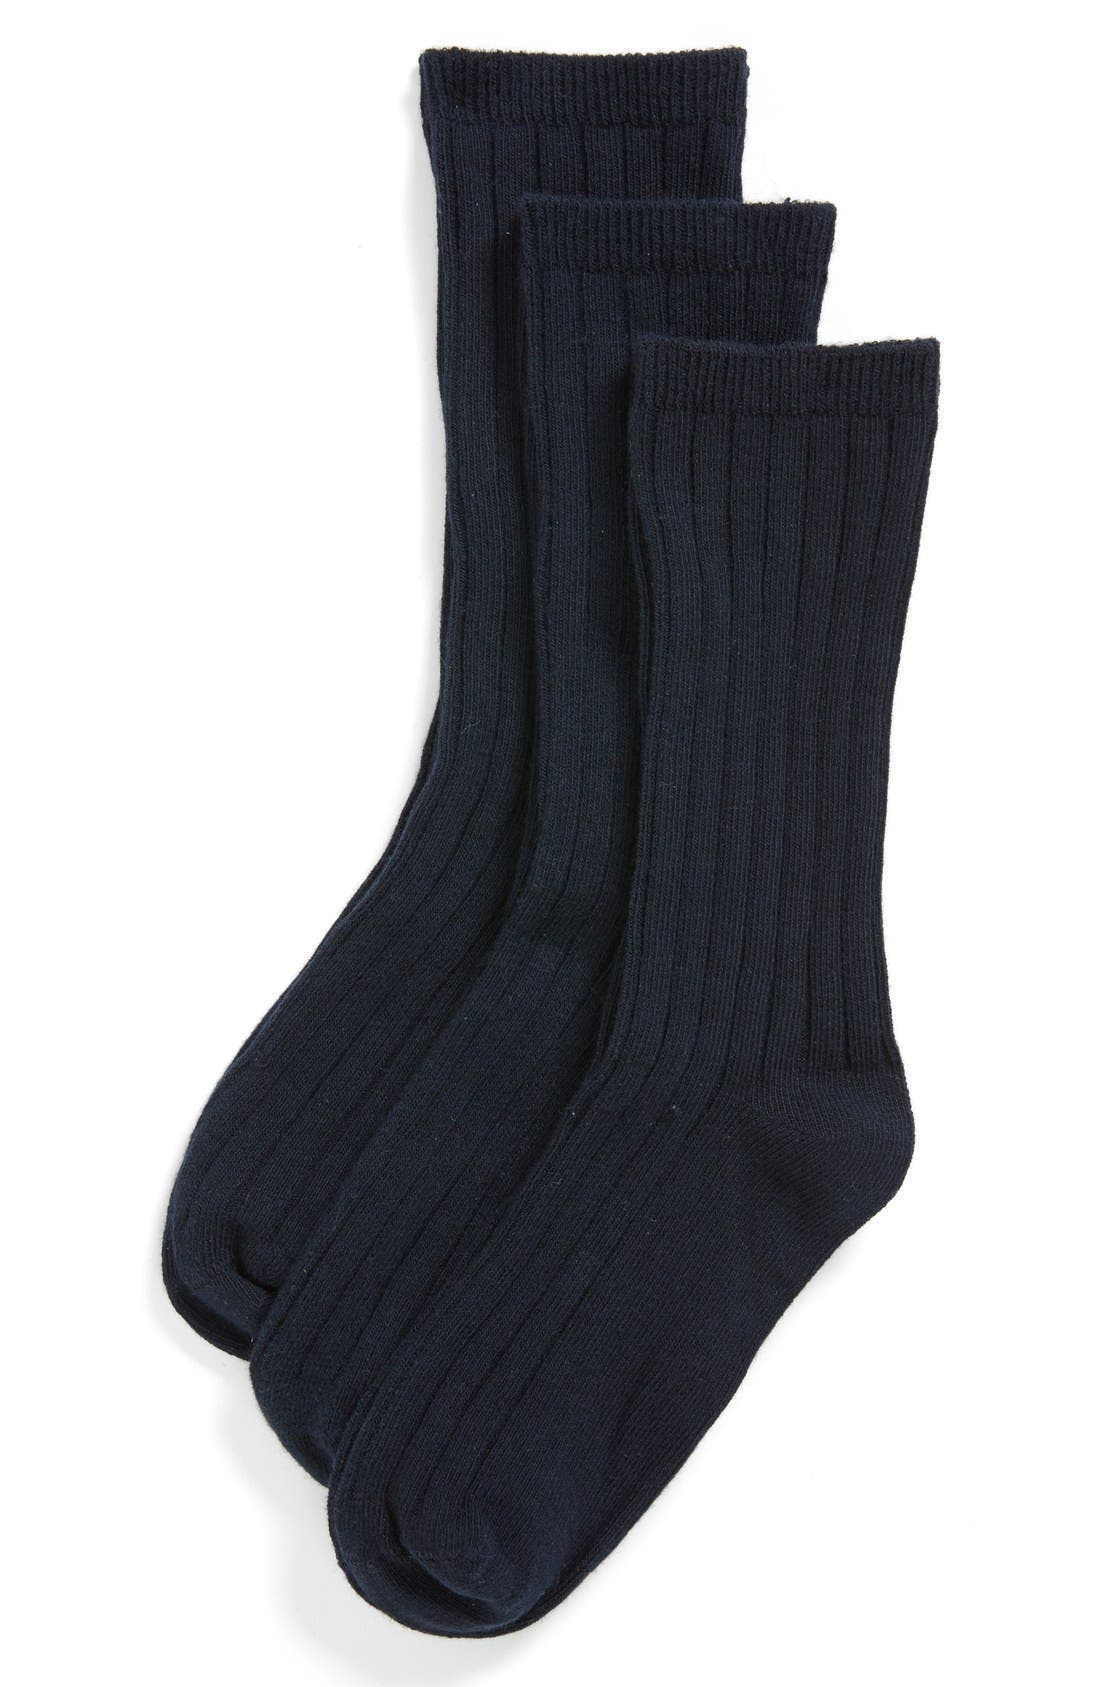 Tucker + Tate 3-Pack Dress Socks (Toddler Boys, Little Boys & Big Boys)